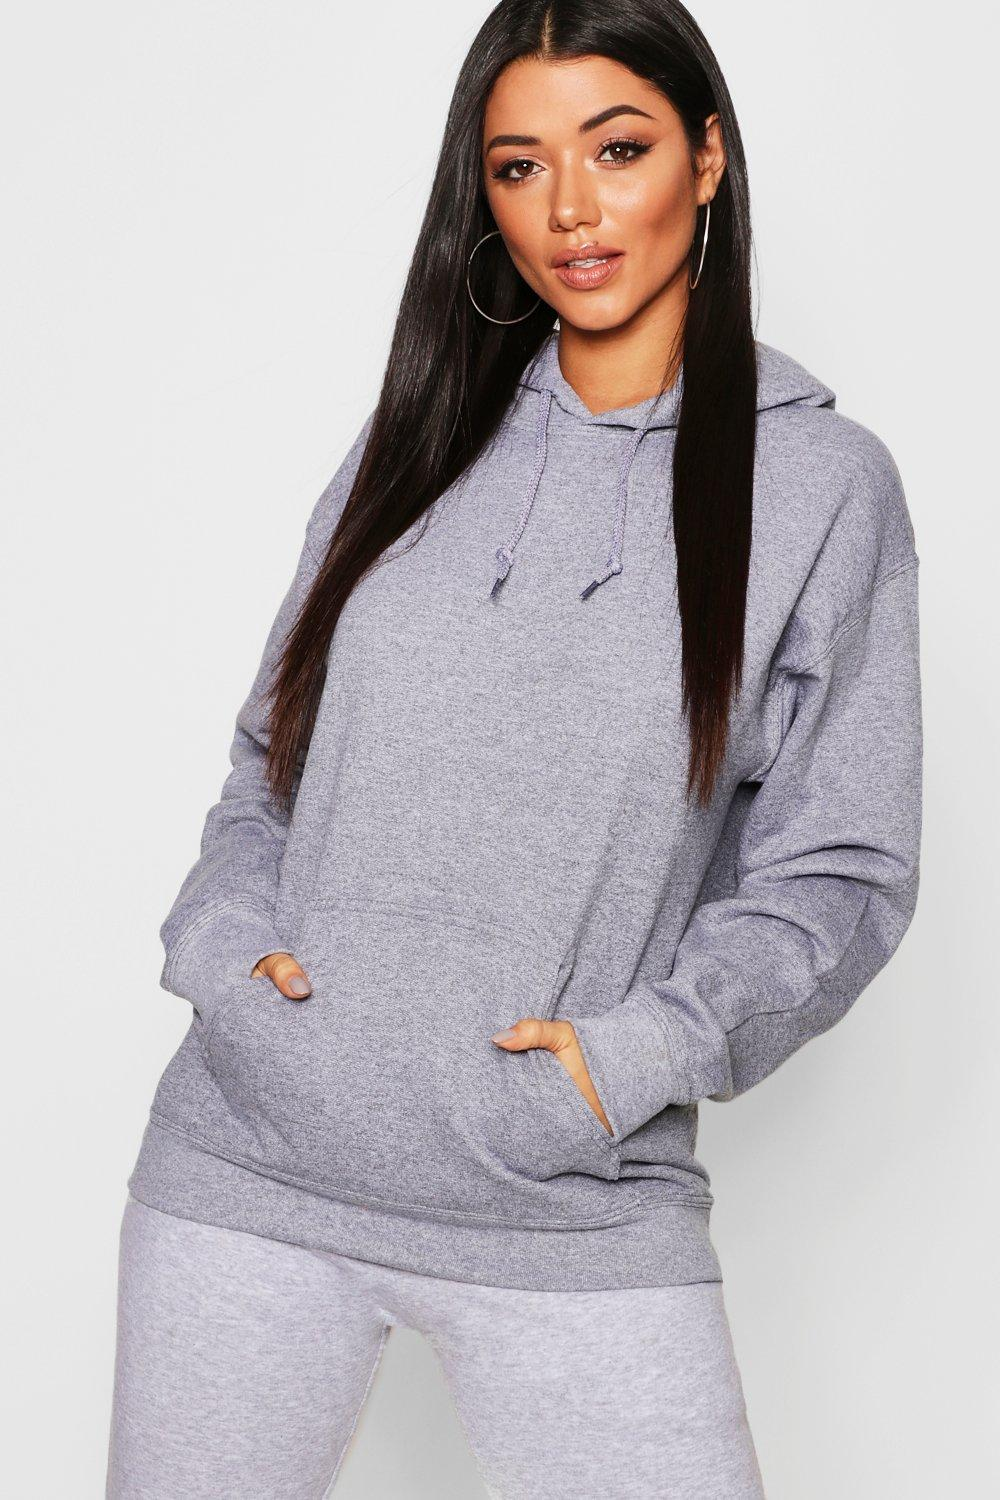 Womens Oversized Hoodie - anthrazit - M, Anthrazit - Boohoo.com